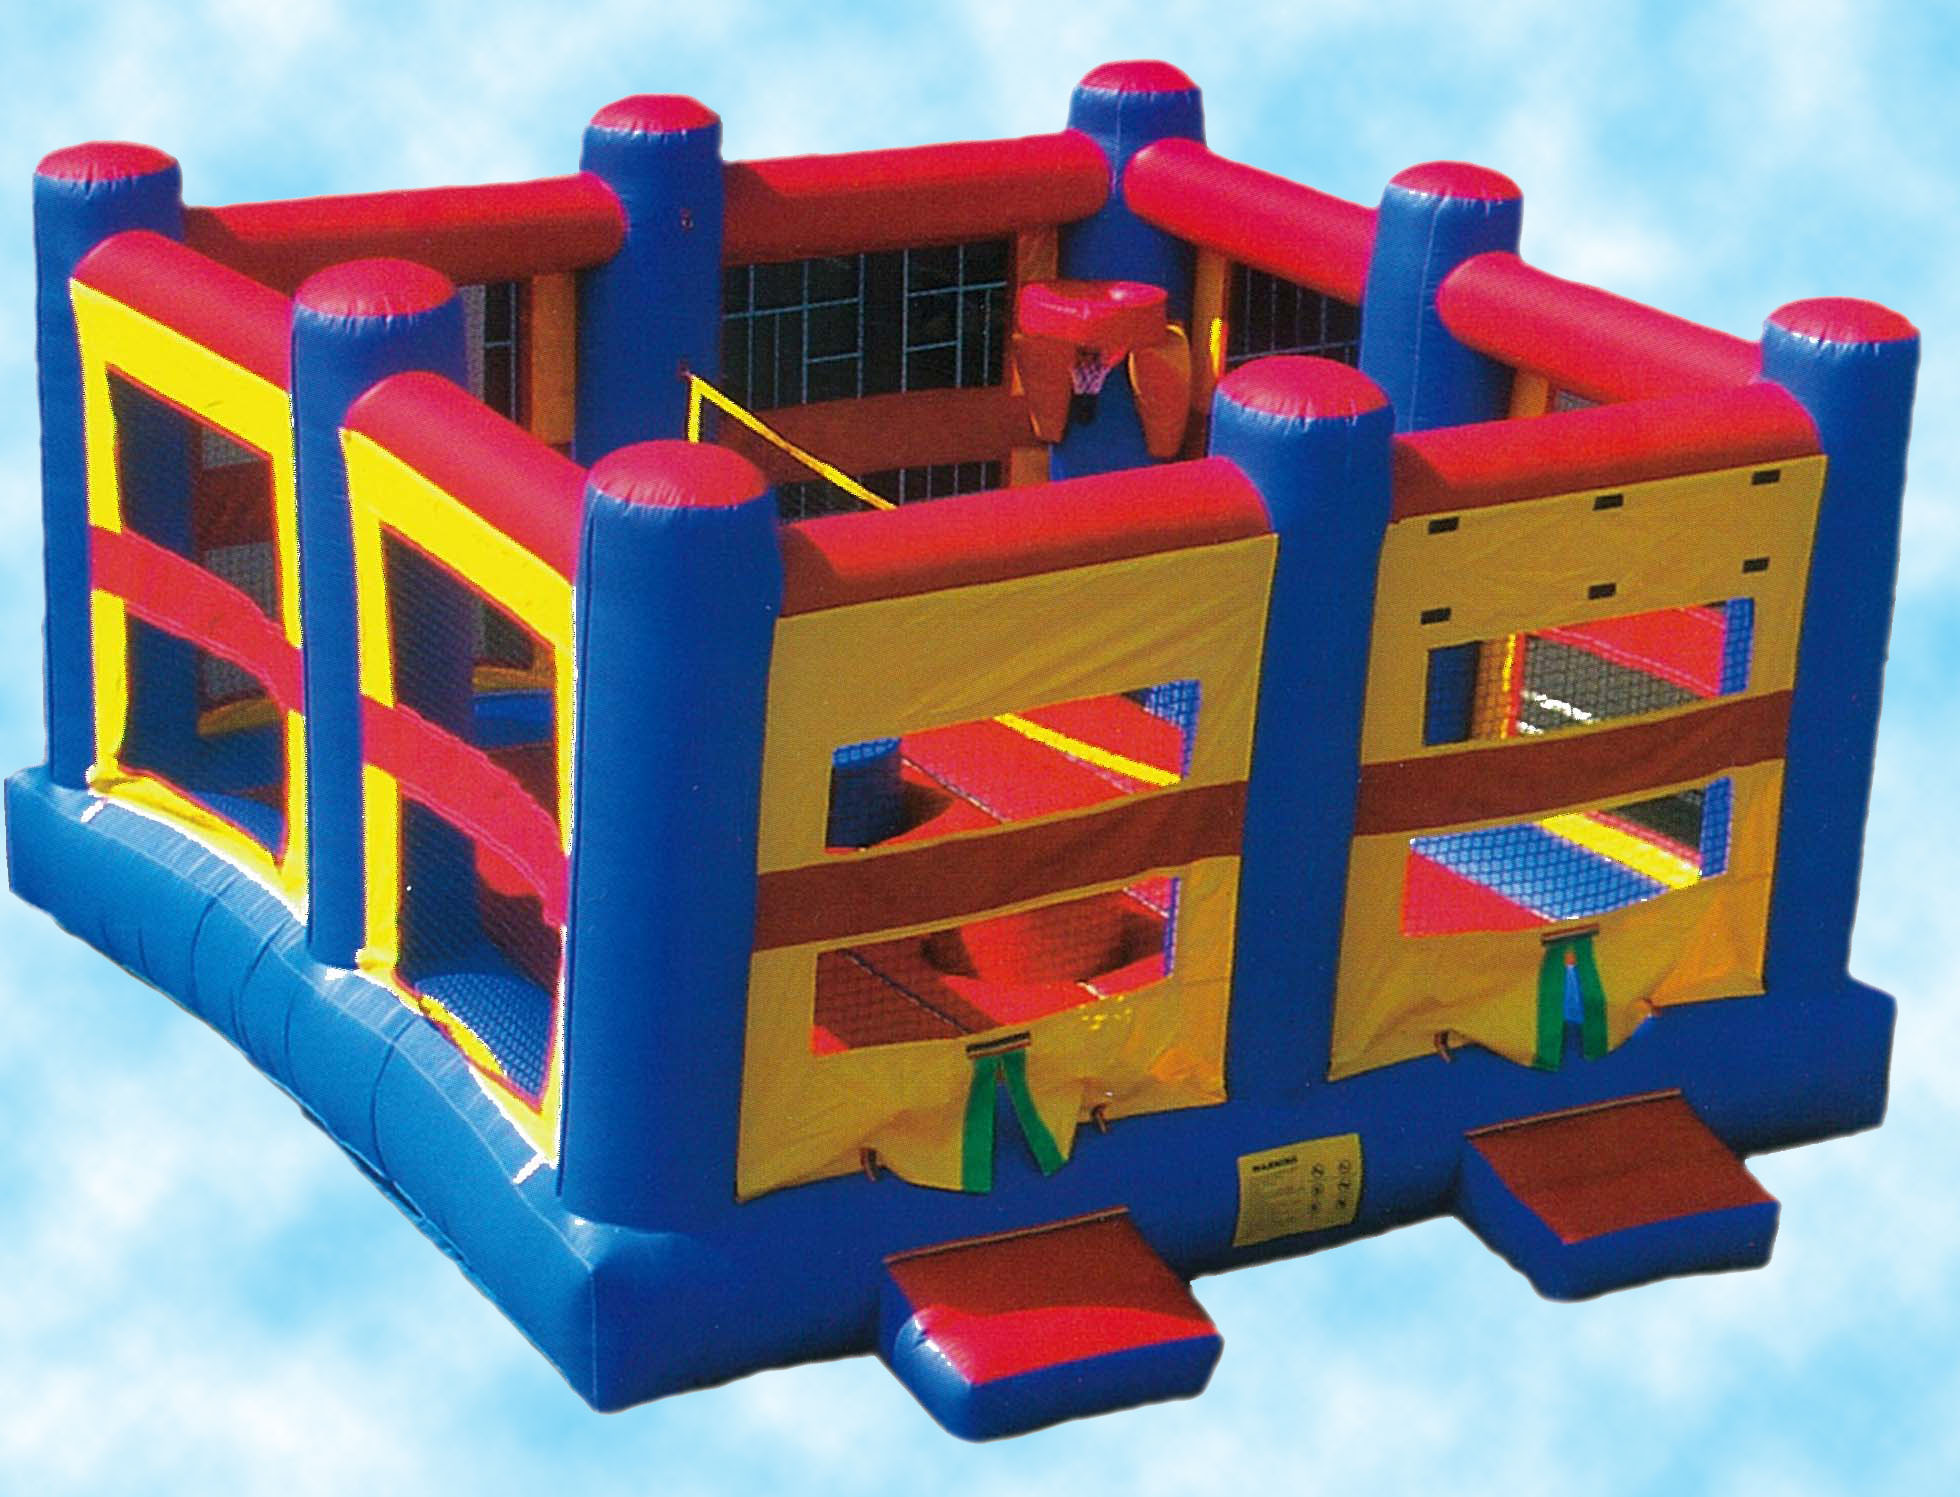 5-N-1SportsCombo$260.00 + tax - A 18' X 18' Bouncer that also includes volley ball, 2 basketball hoops, 2 Jousting sticks and pedestals and 2 pair of over sized, over stuffed boxing gloves.